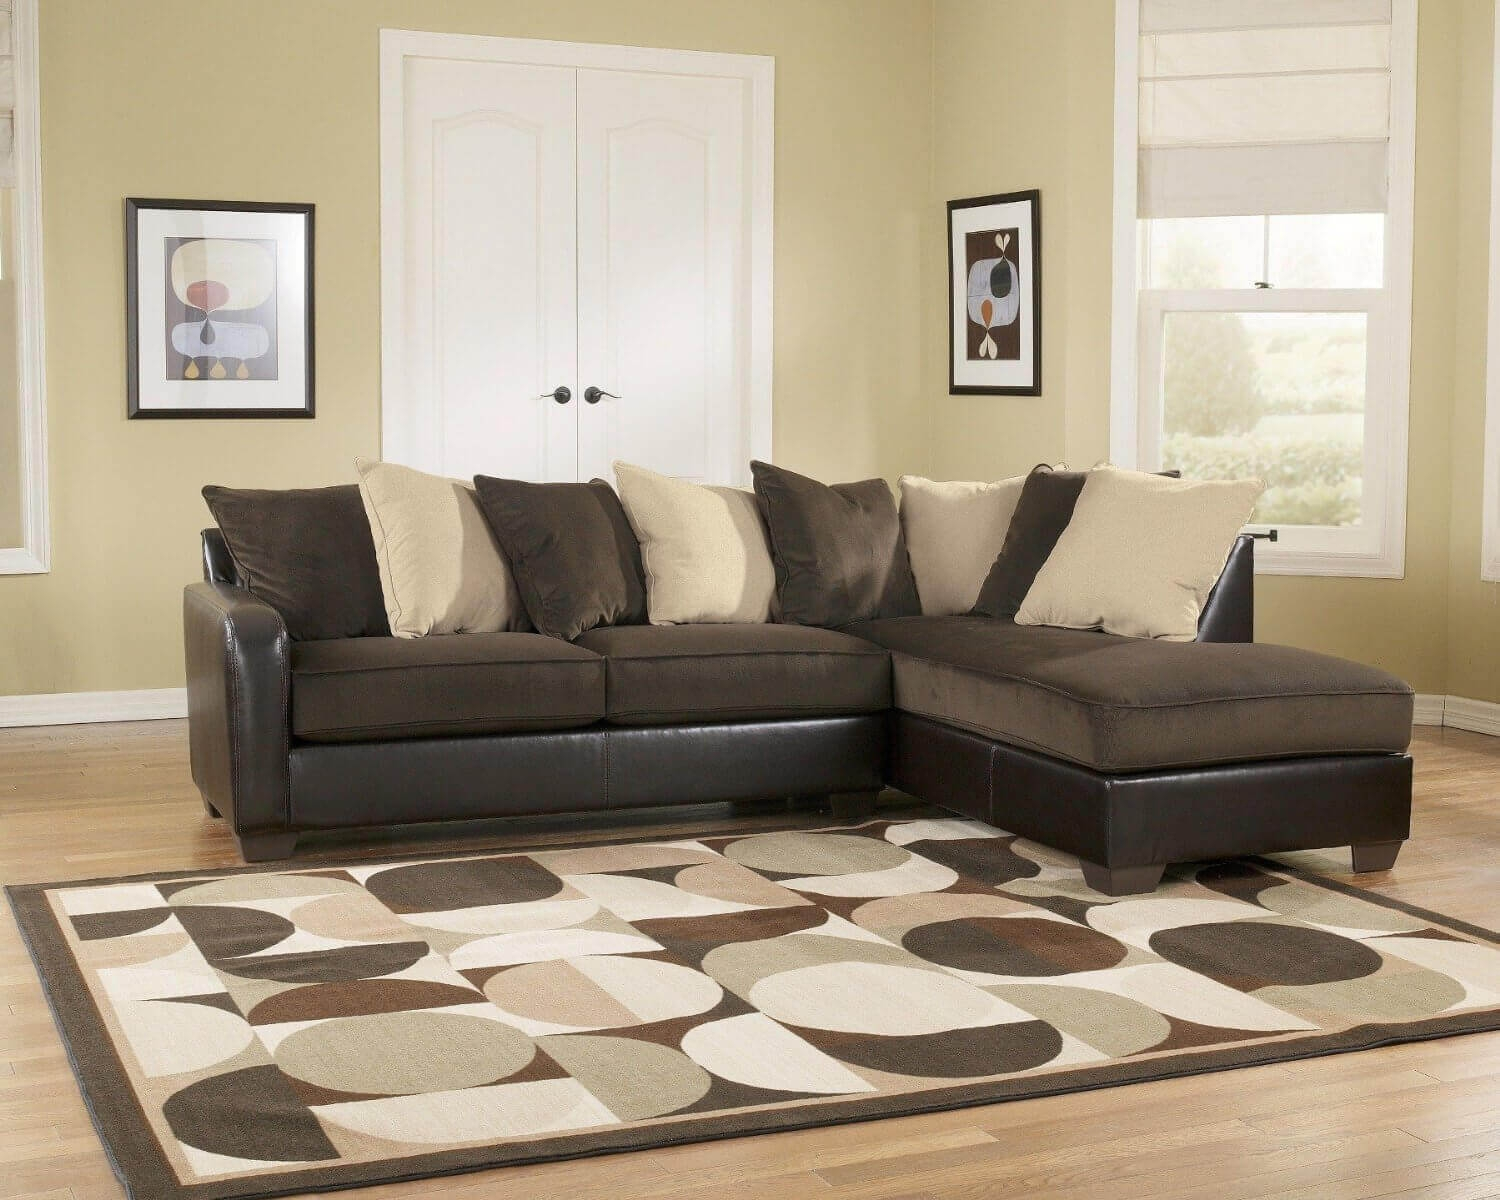 100 Beautiful Sectional Sofas Under 1000 With Regard To European Sectional Sofas (View 7 of 15)